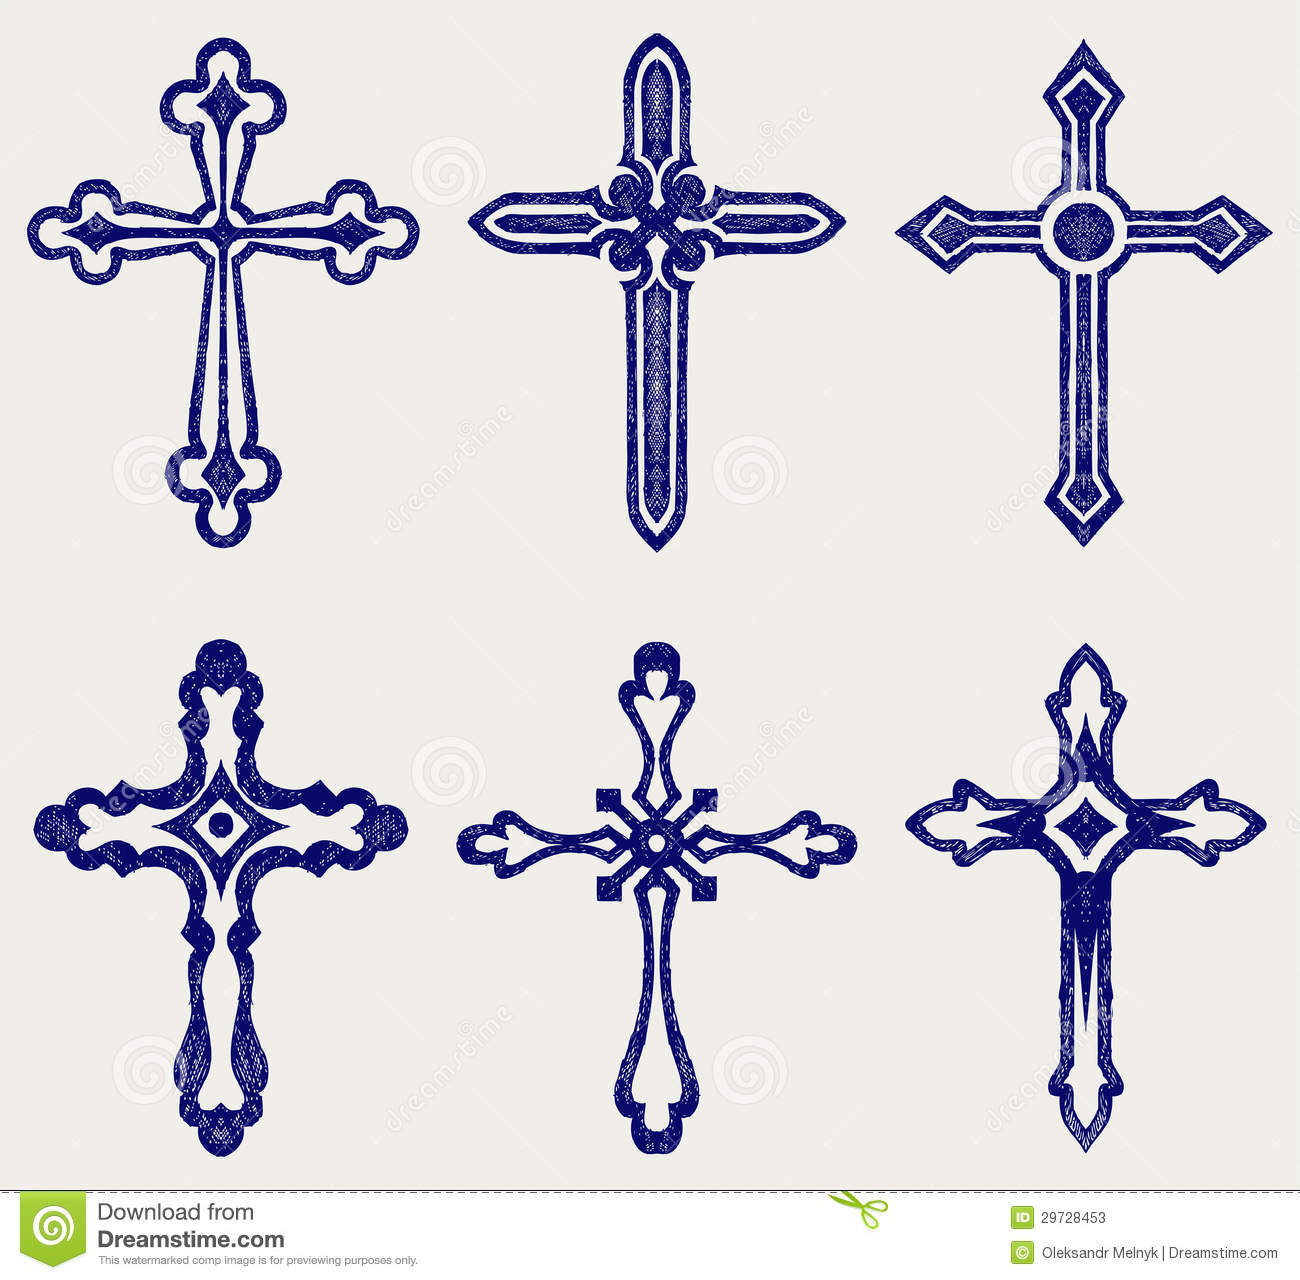 Religious Cross Design Collection Stock Photos - Image: 29728453